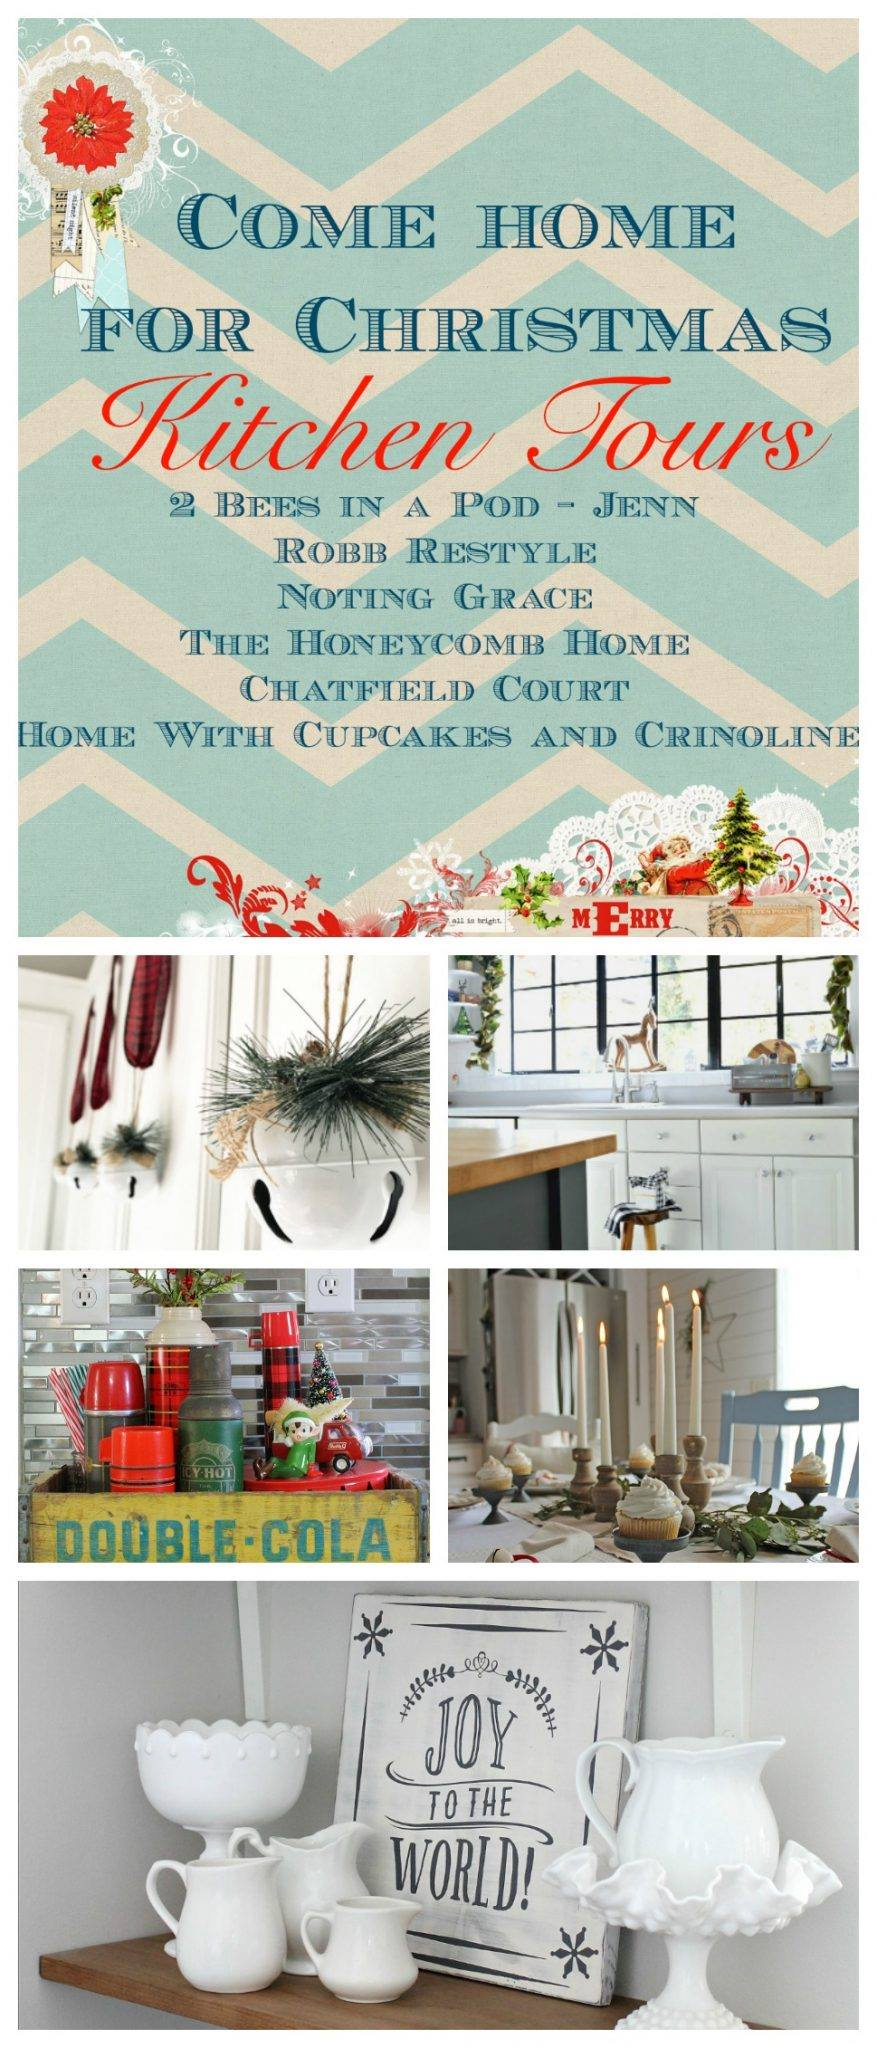 Come Home for Christmas Kitchen Tours